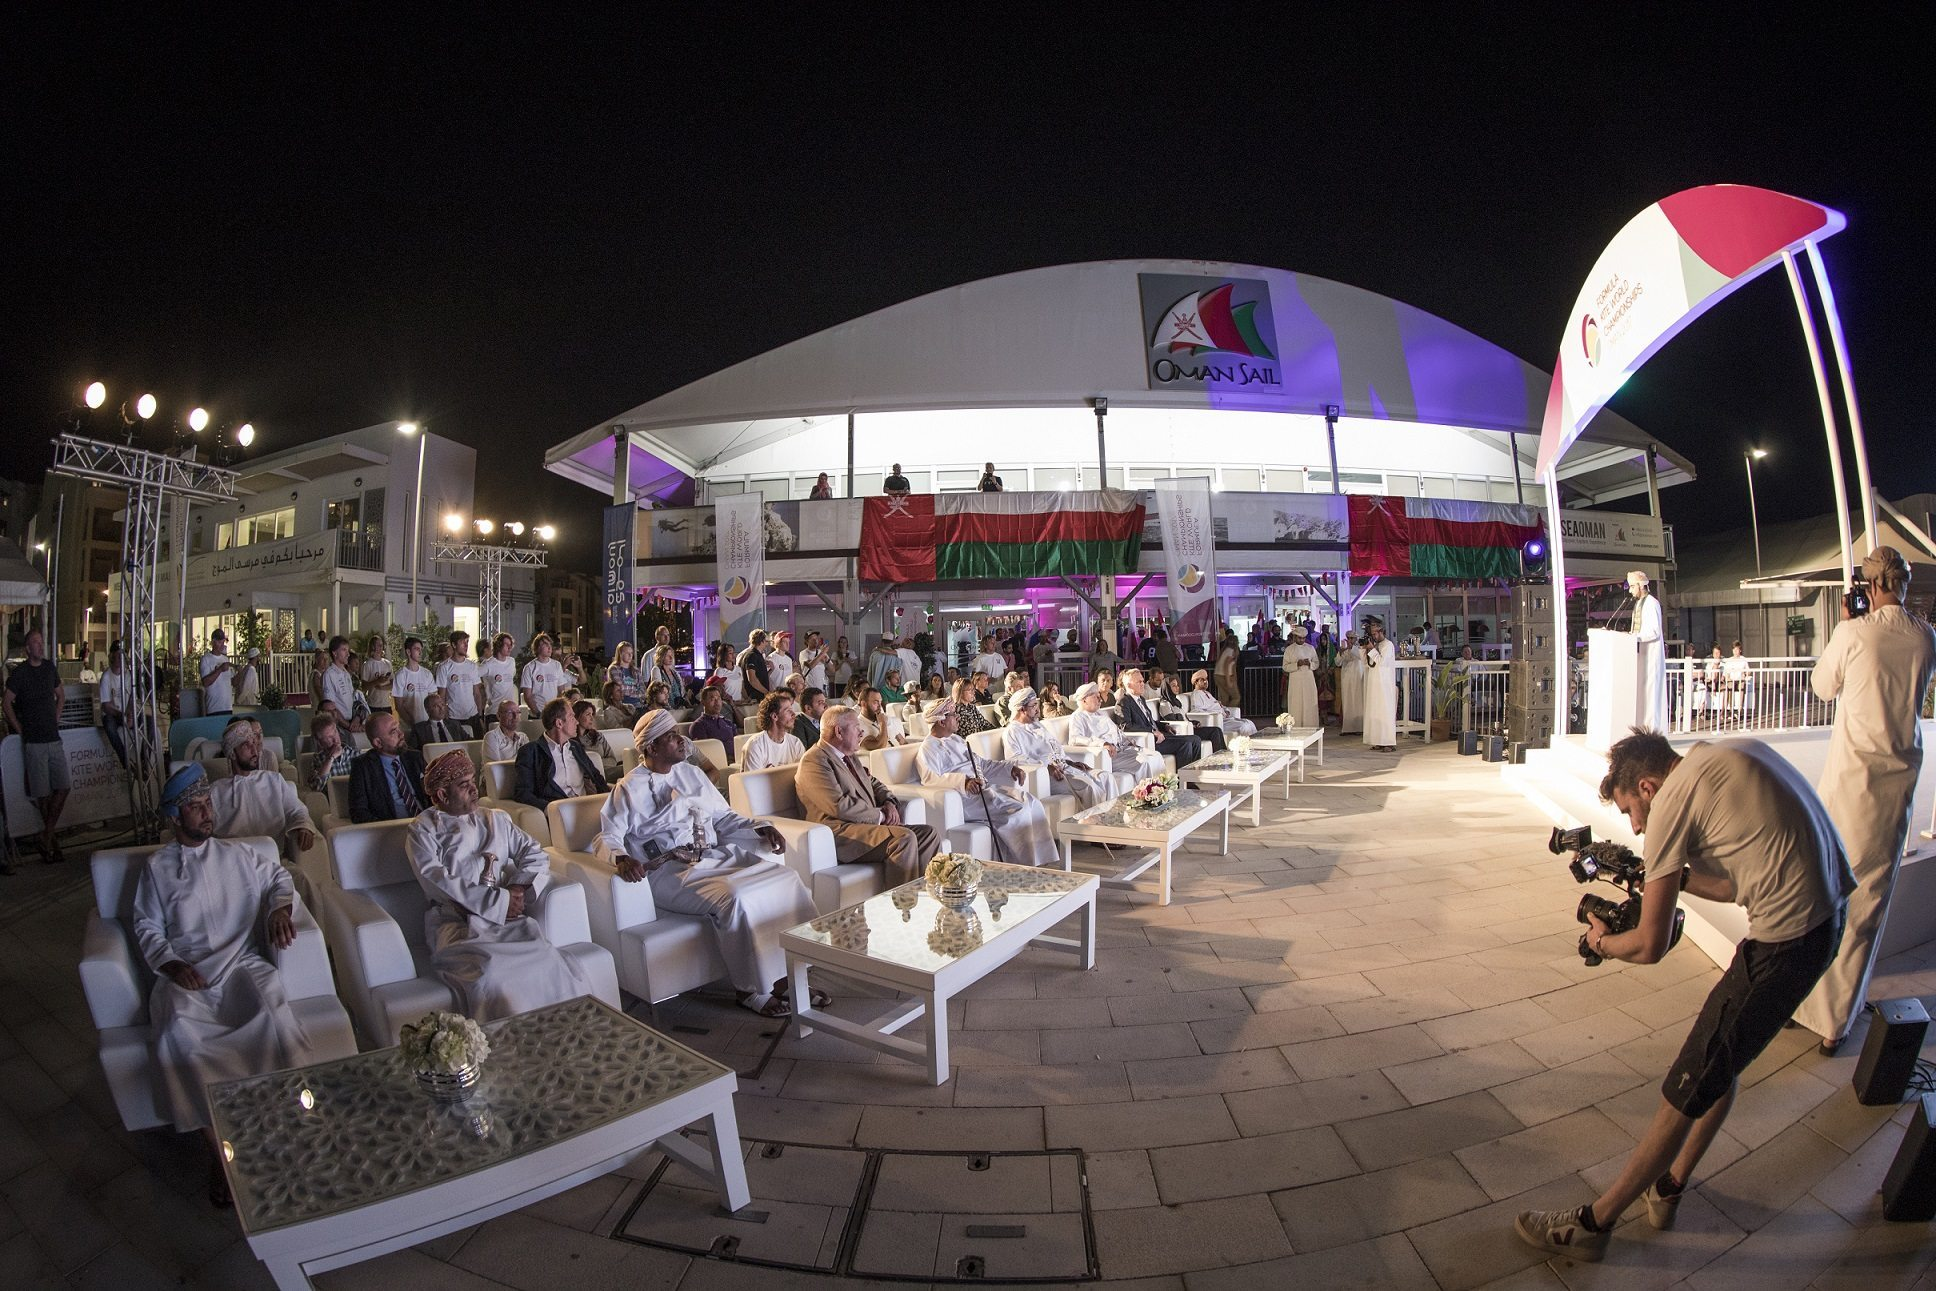 The 2017 IKA Formula Kite World Championships officially opened in Al Mouj Muscat